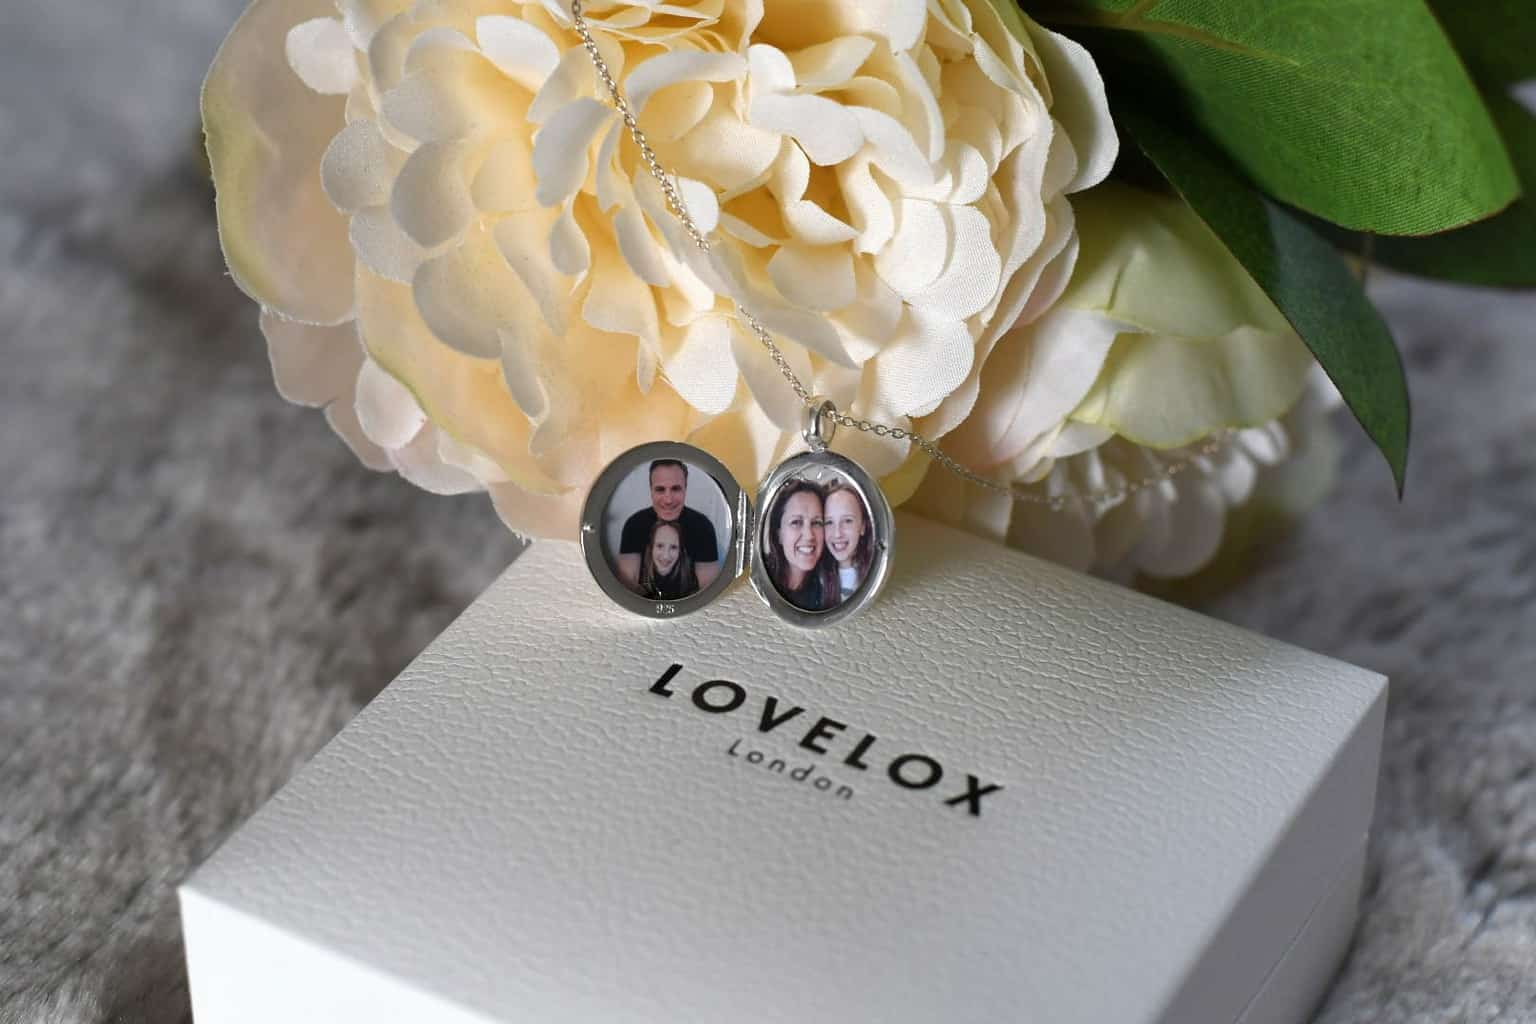 Lillie's Personalised Locket from LoveLox #ad